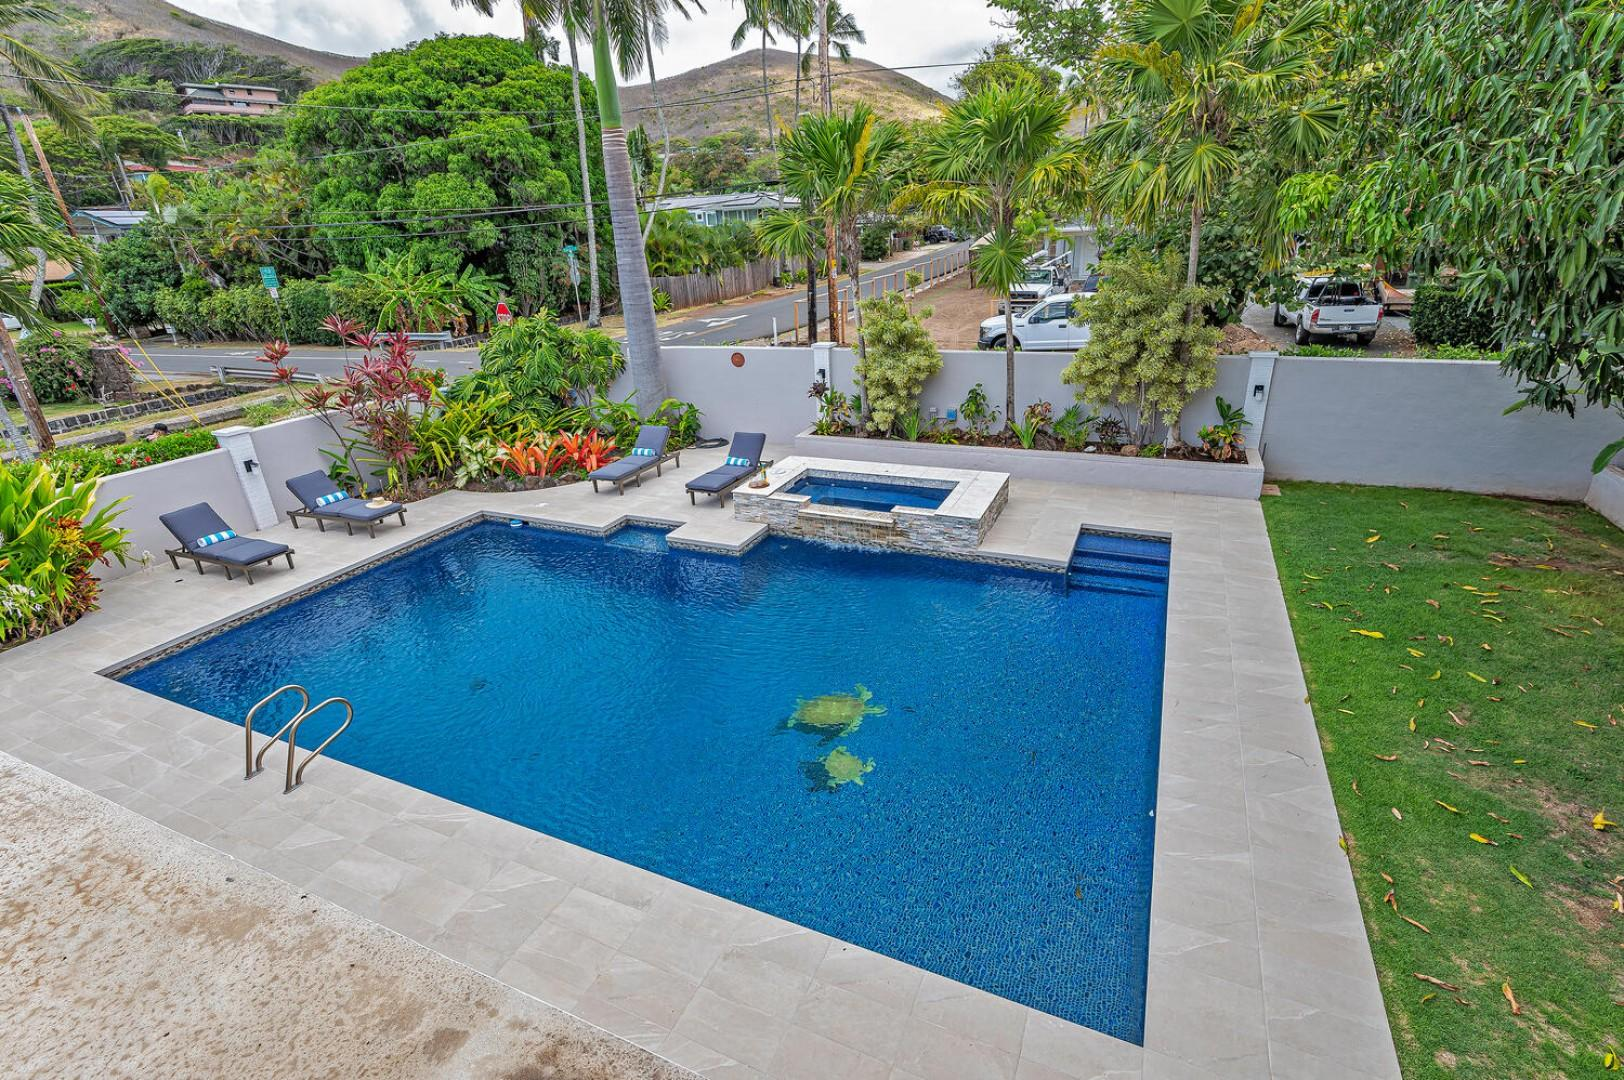 Birds eye view of the pool from the media room lanai. (Note: Upper pool area is apart of the pool and NOT a spa)